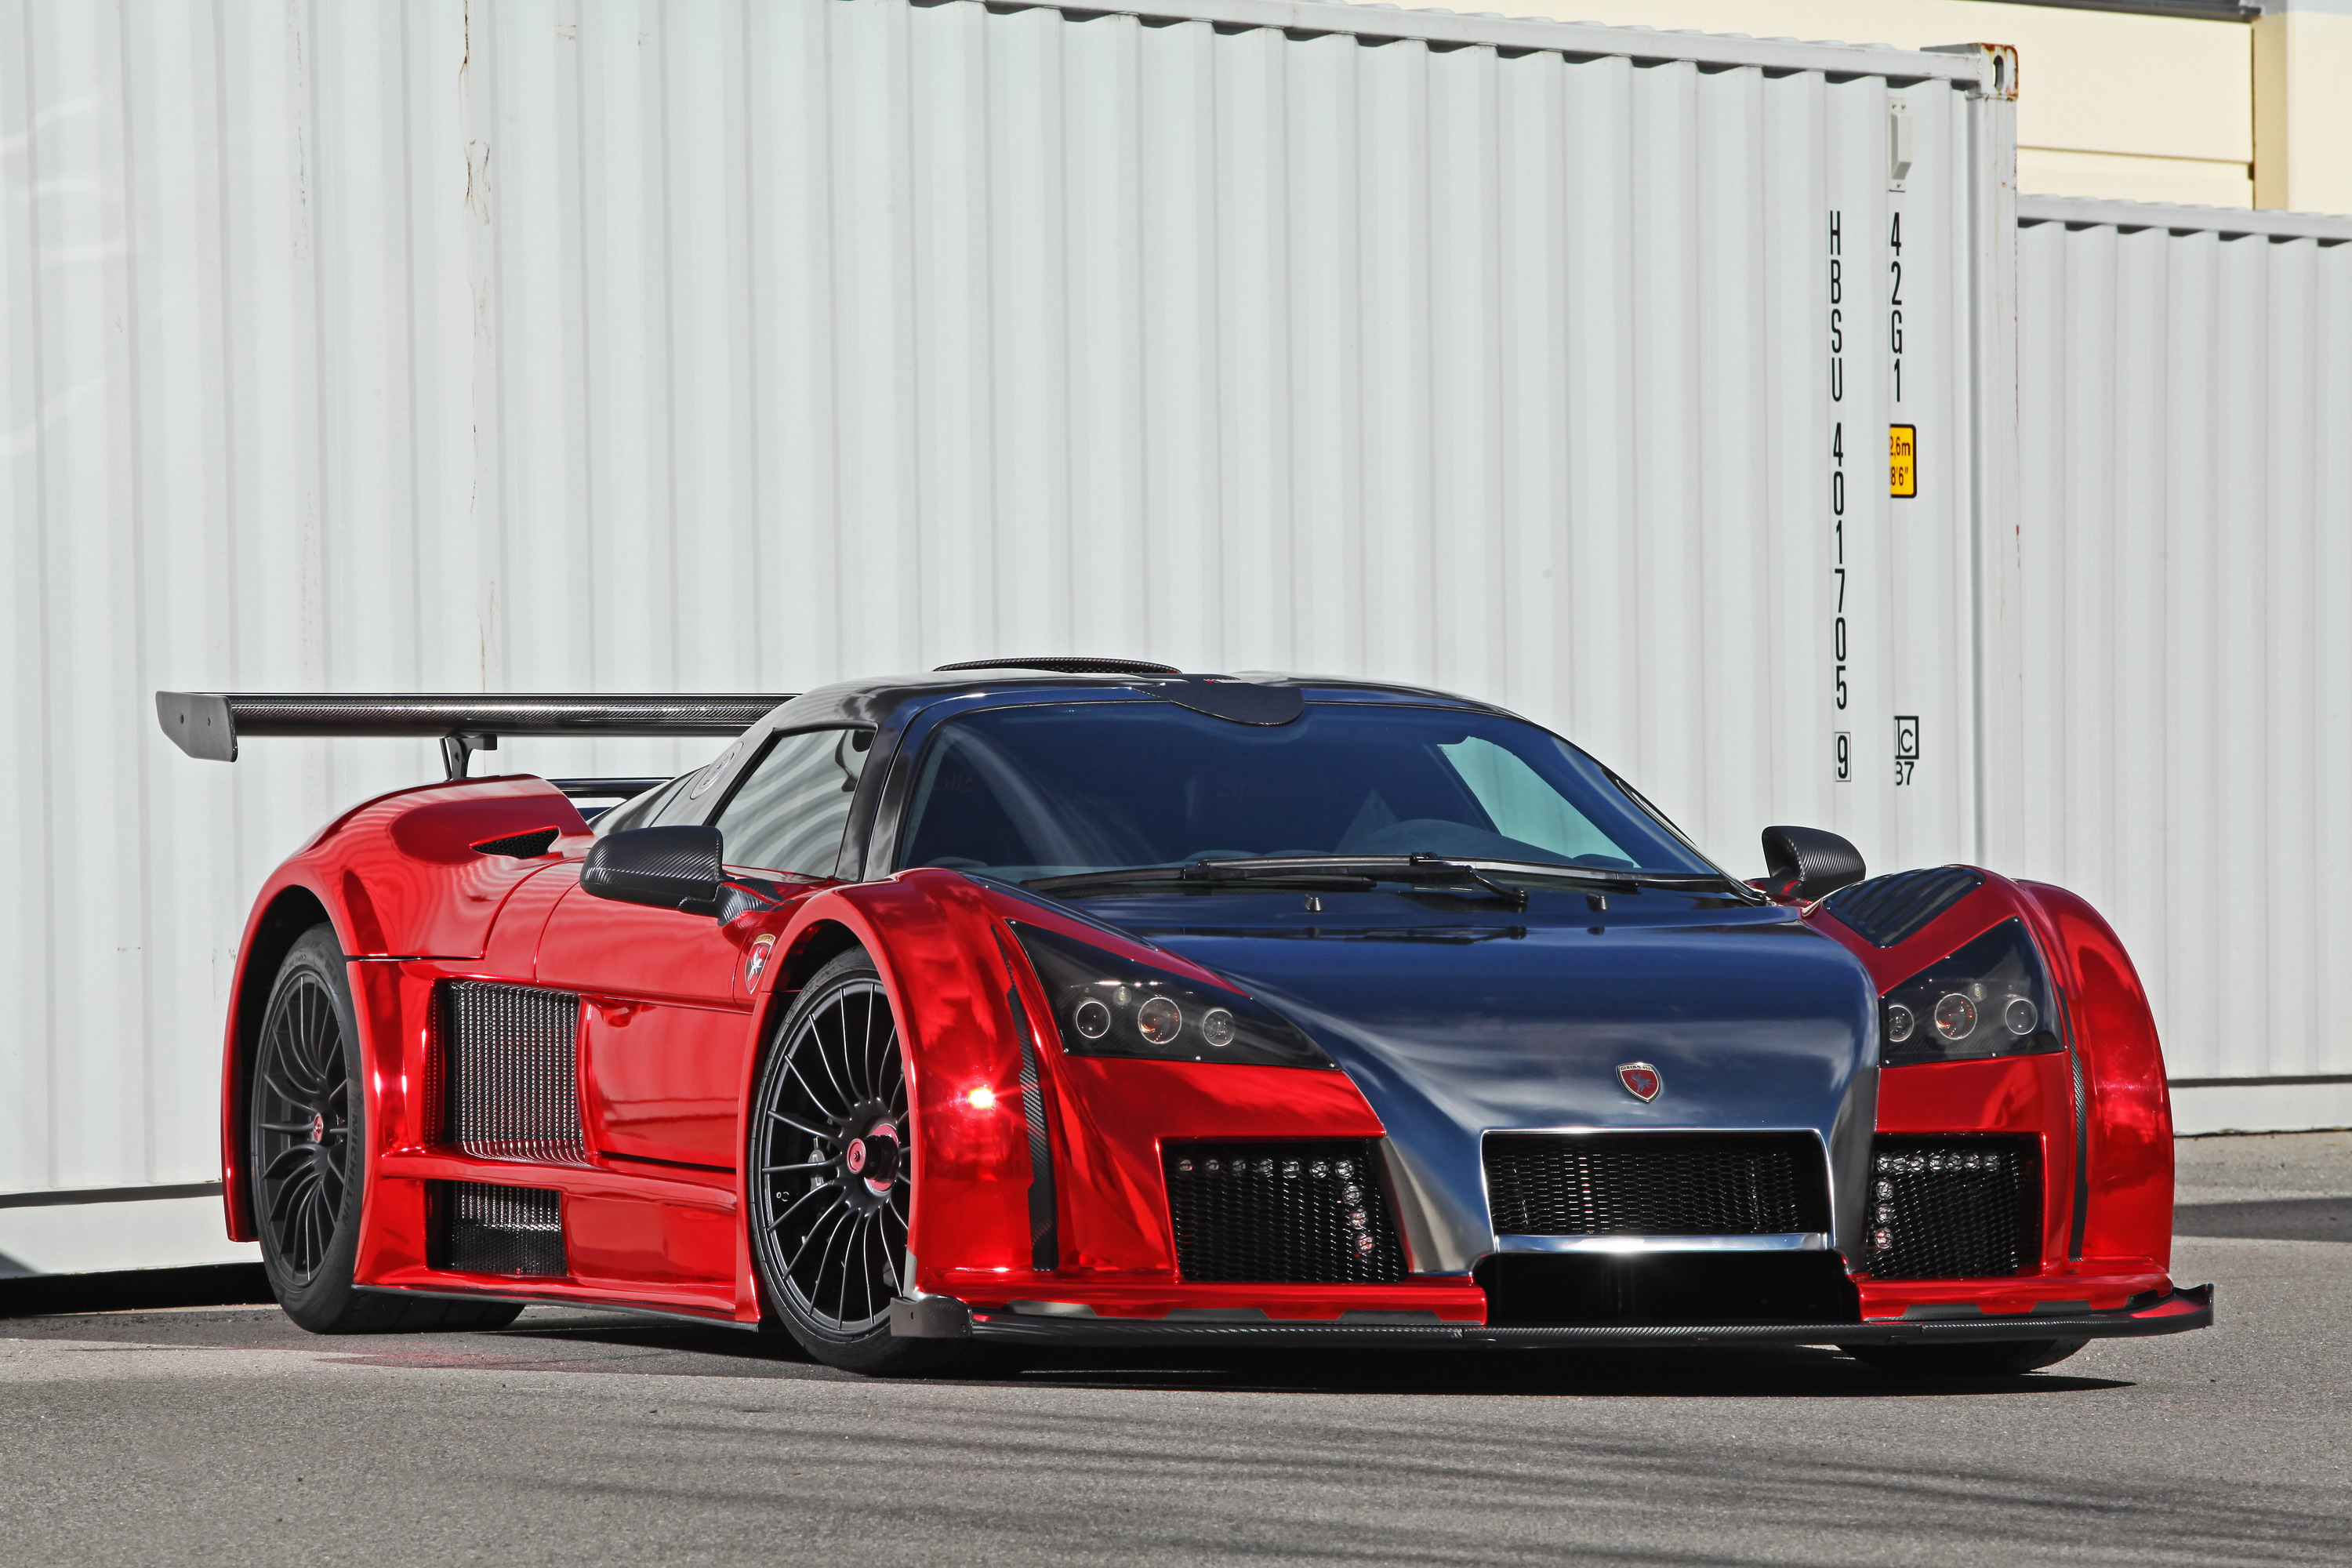 2013 Gumpert Apollo S Ironcar By 2M Designs | Top Speed